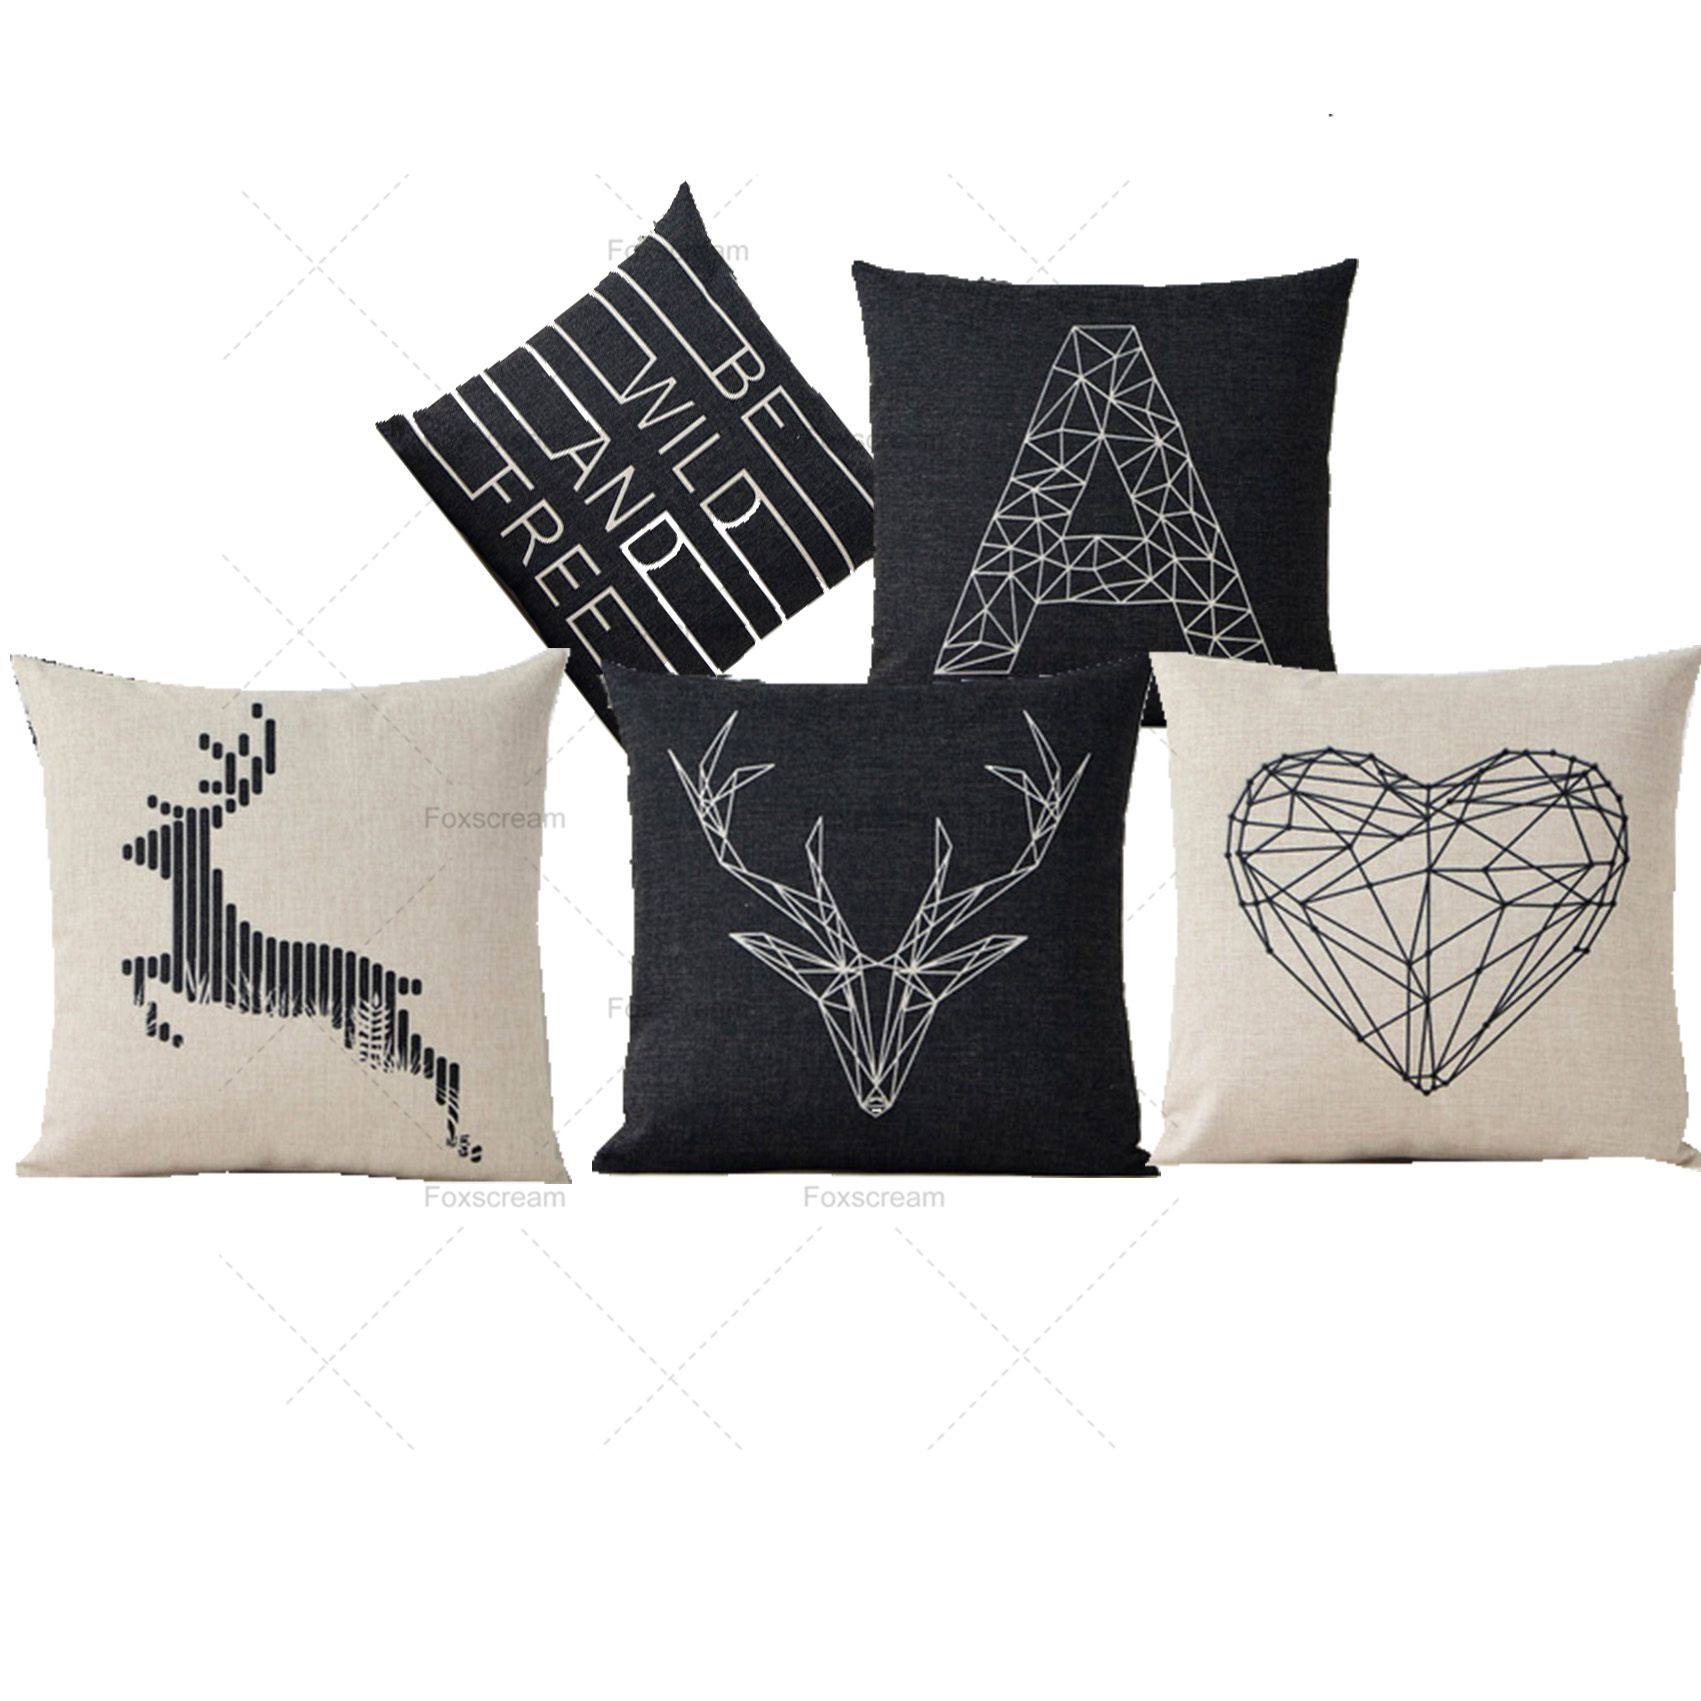 deer print bck diamond pillow collections domaci charcoal lumbar pillows iwil classic throw